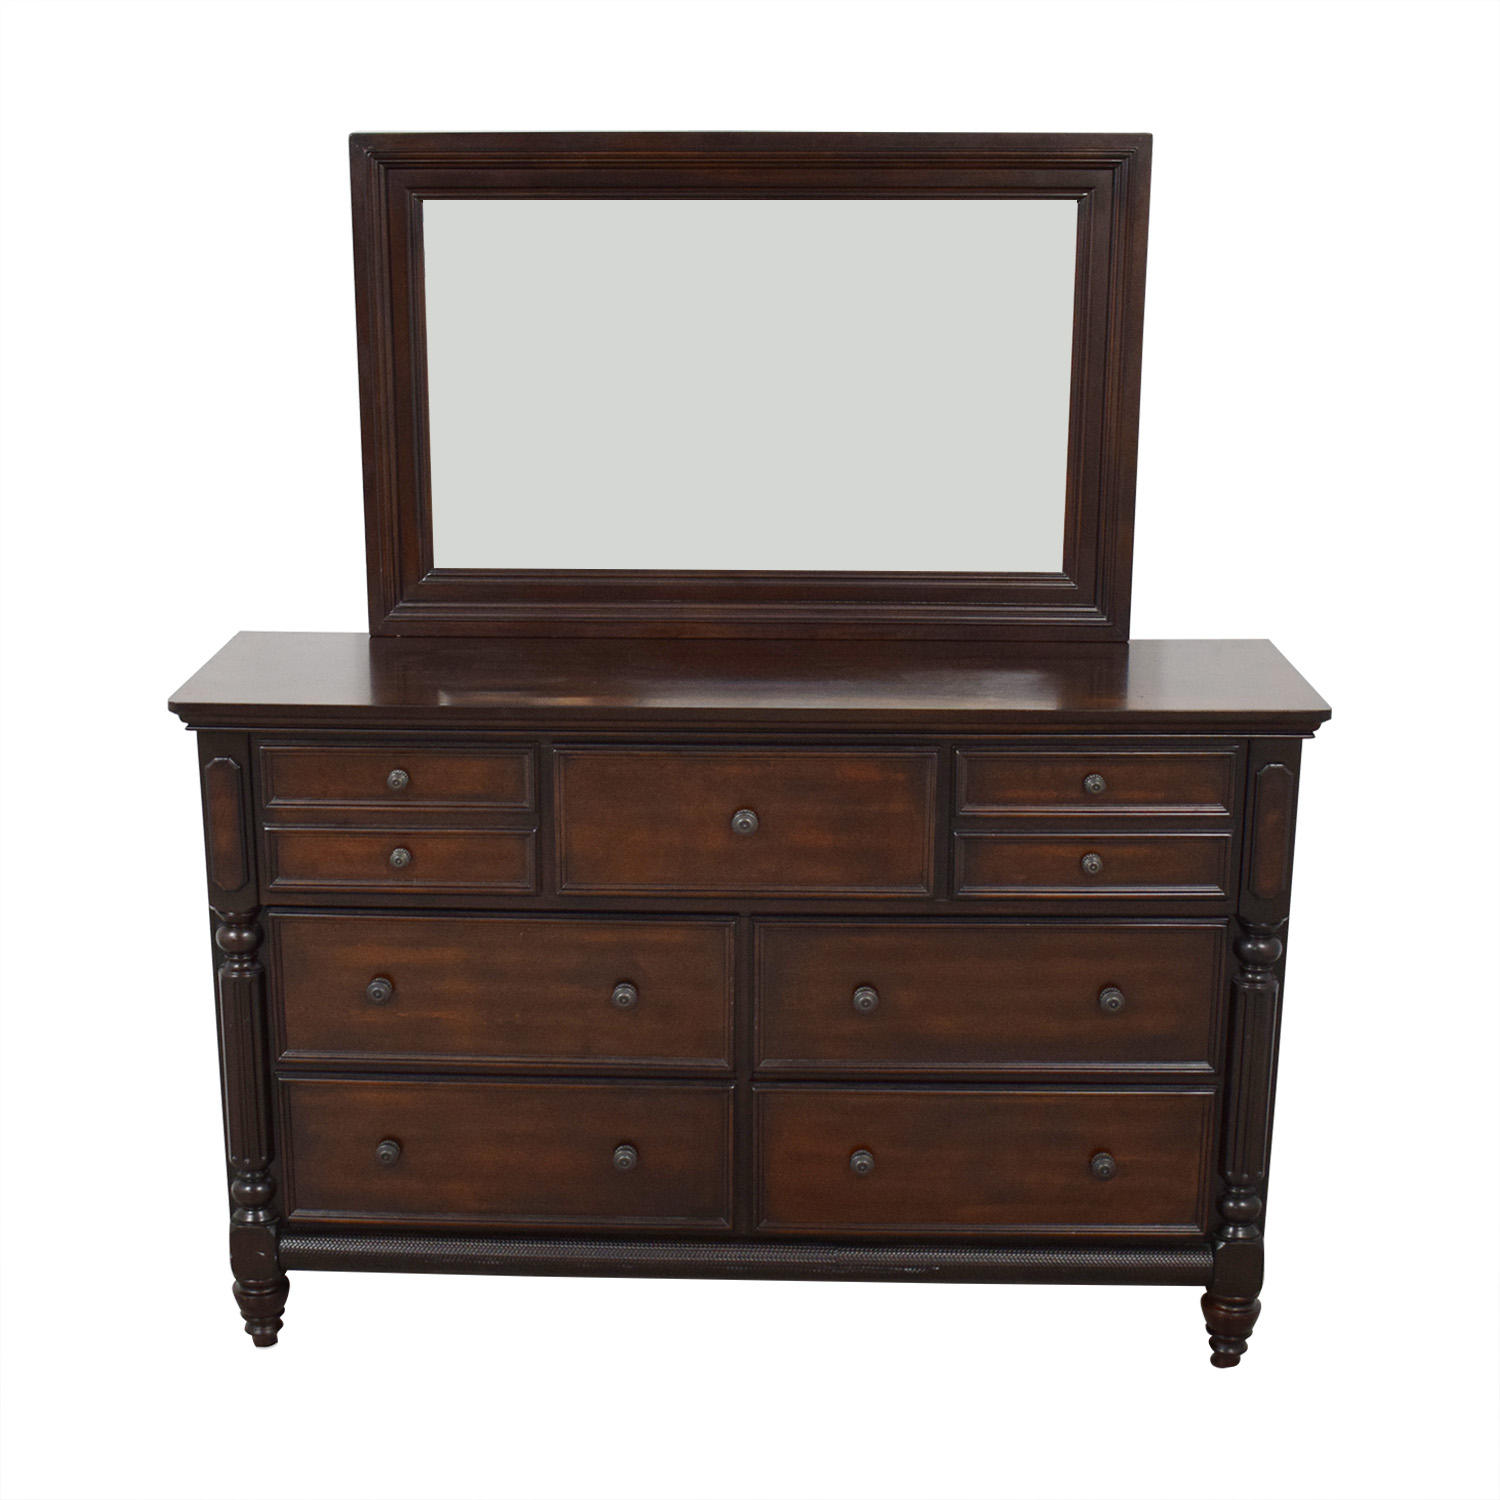 buy Ashley Furniture Ashley Furniture Key Town Dresser with Mirror online